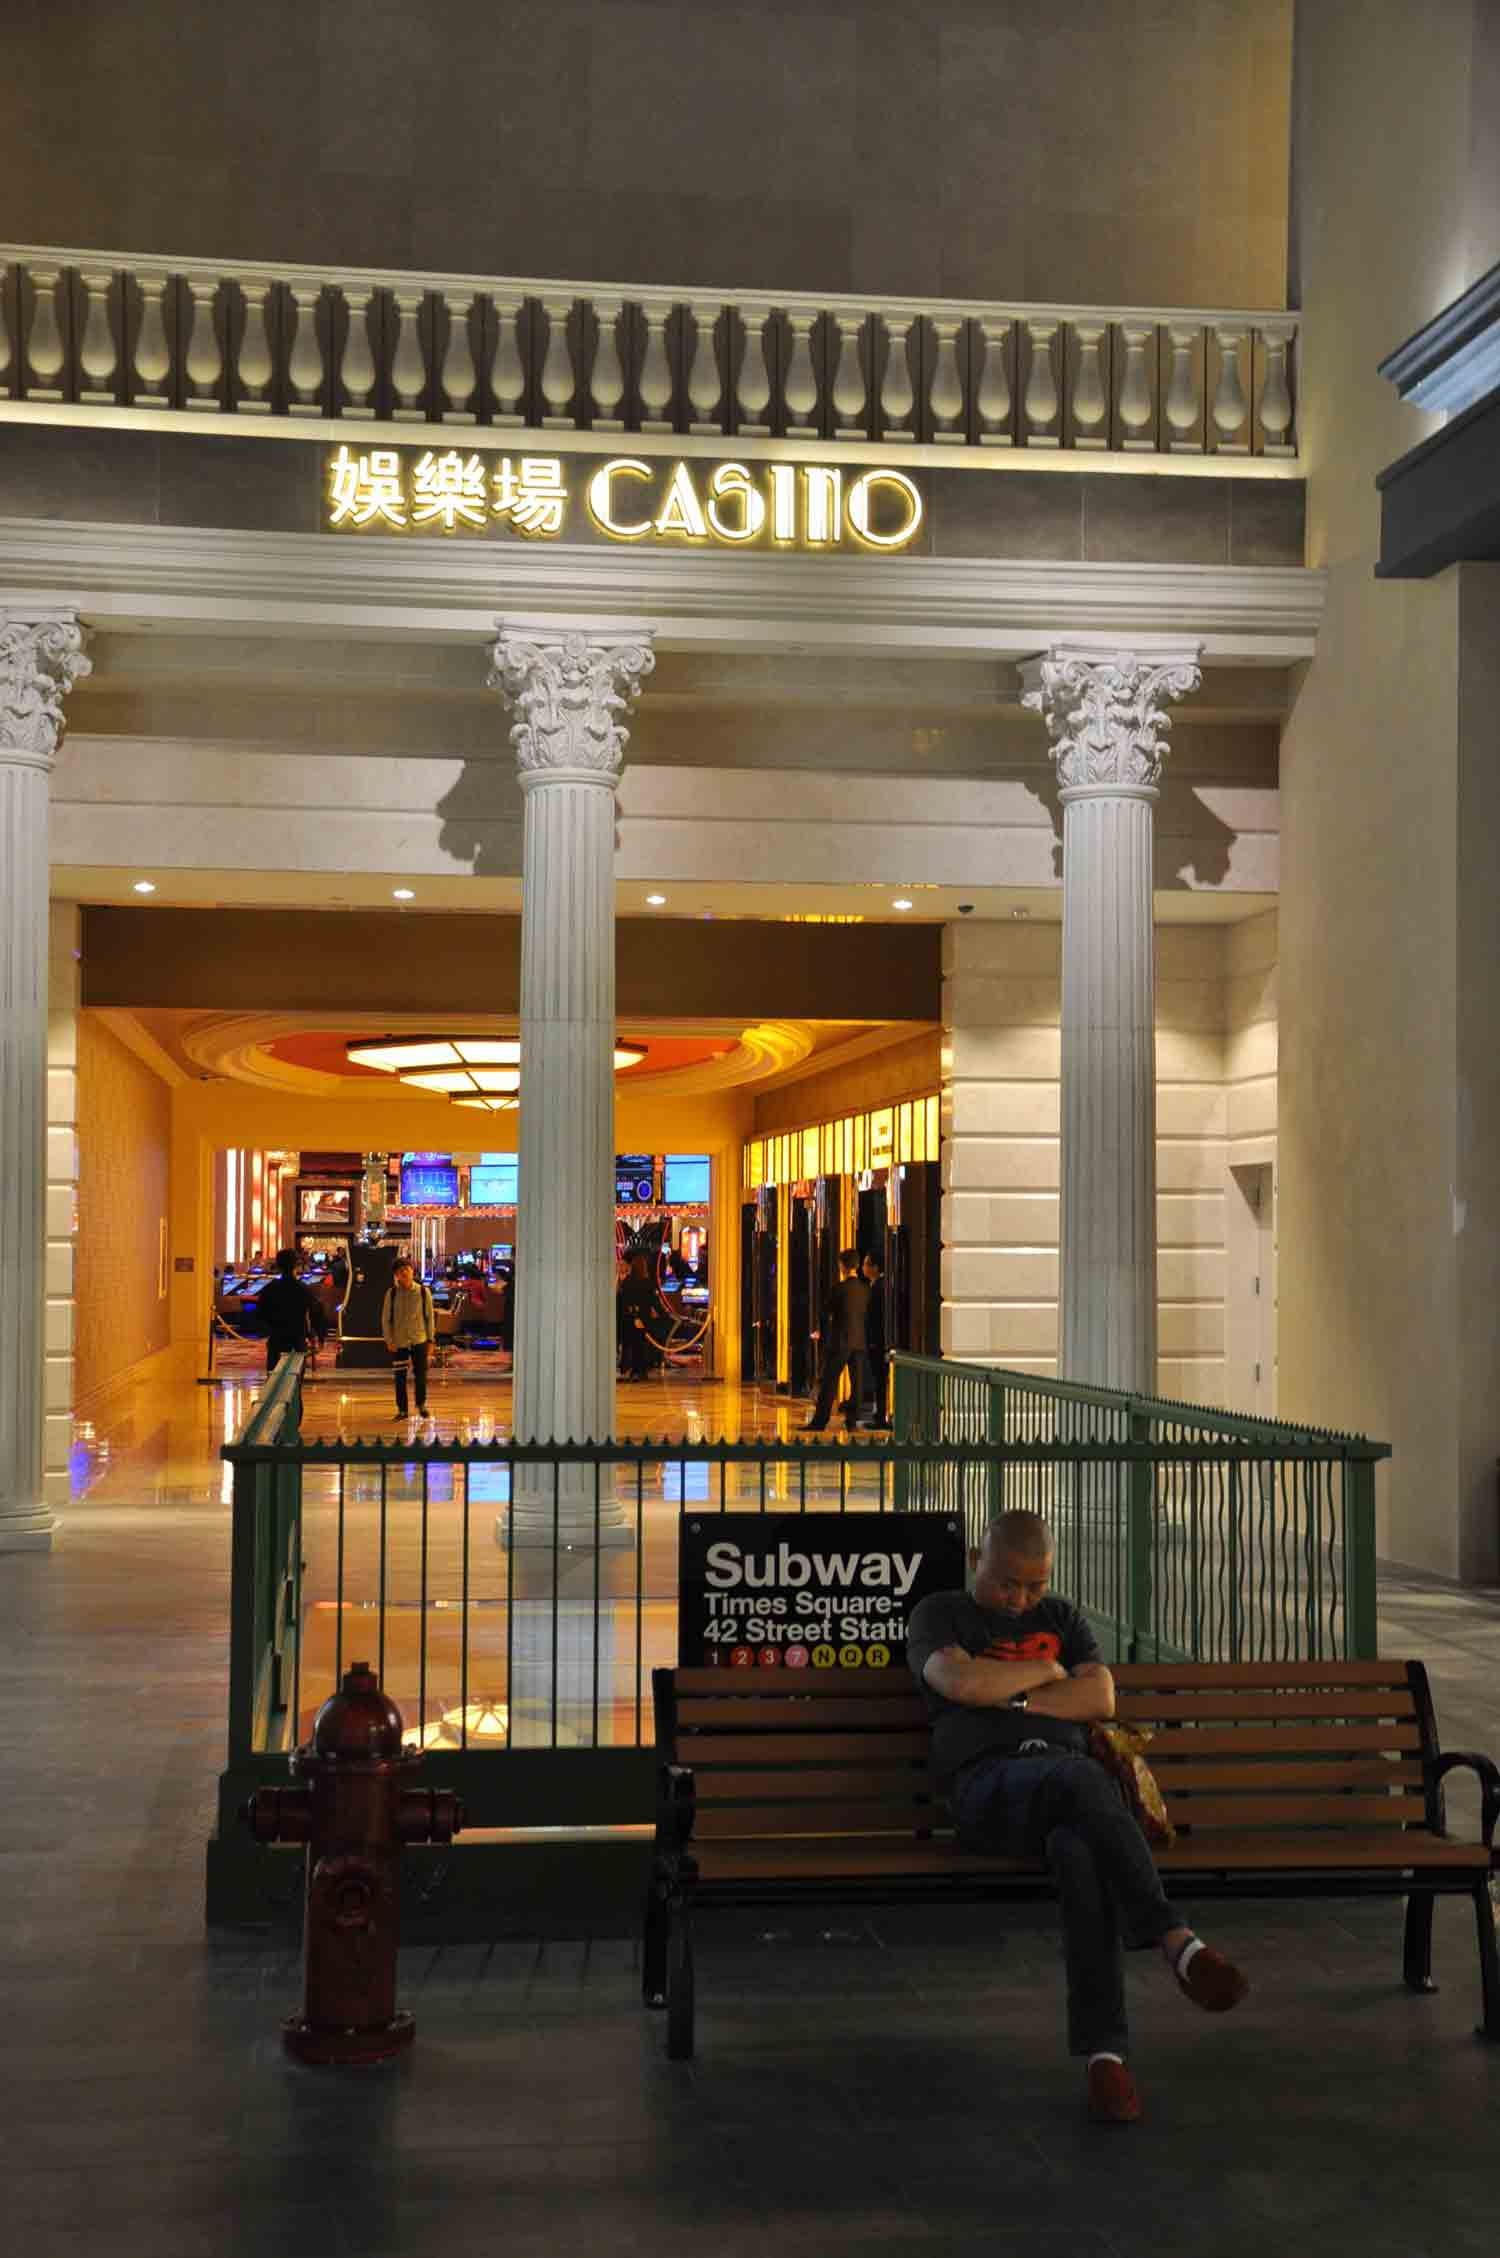 Studio City Macau subway stop